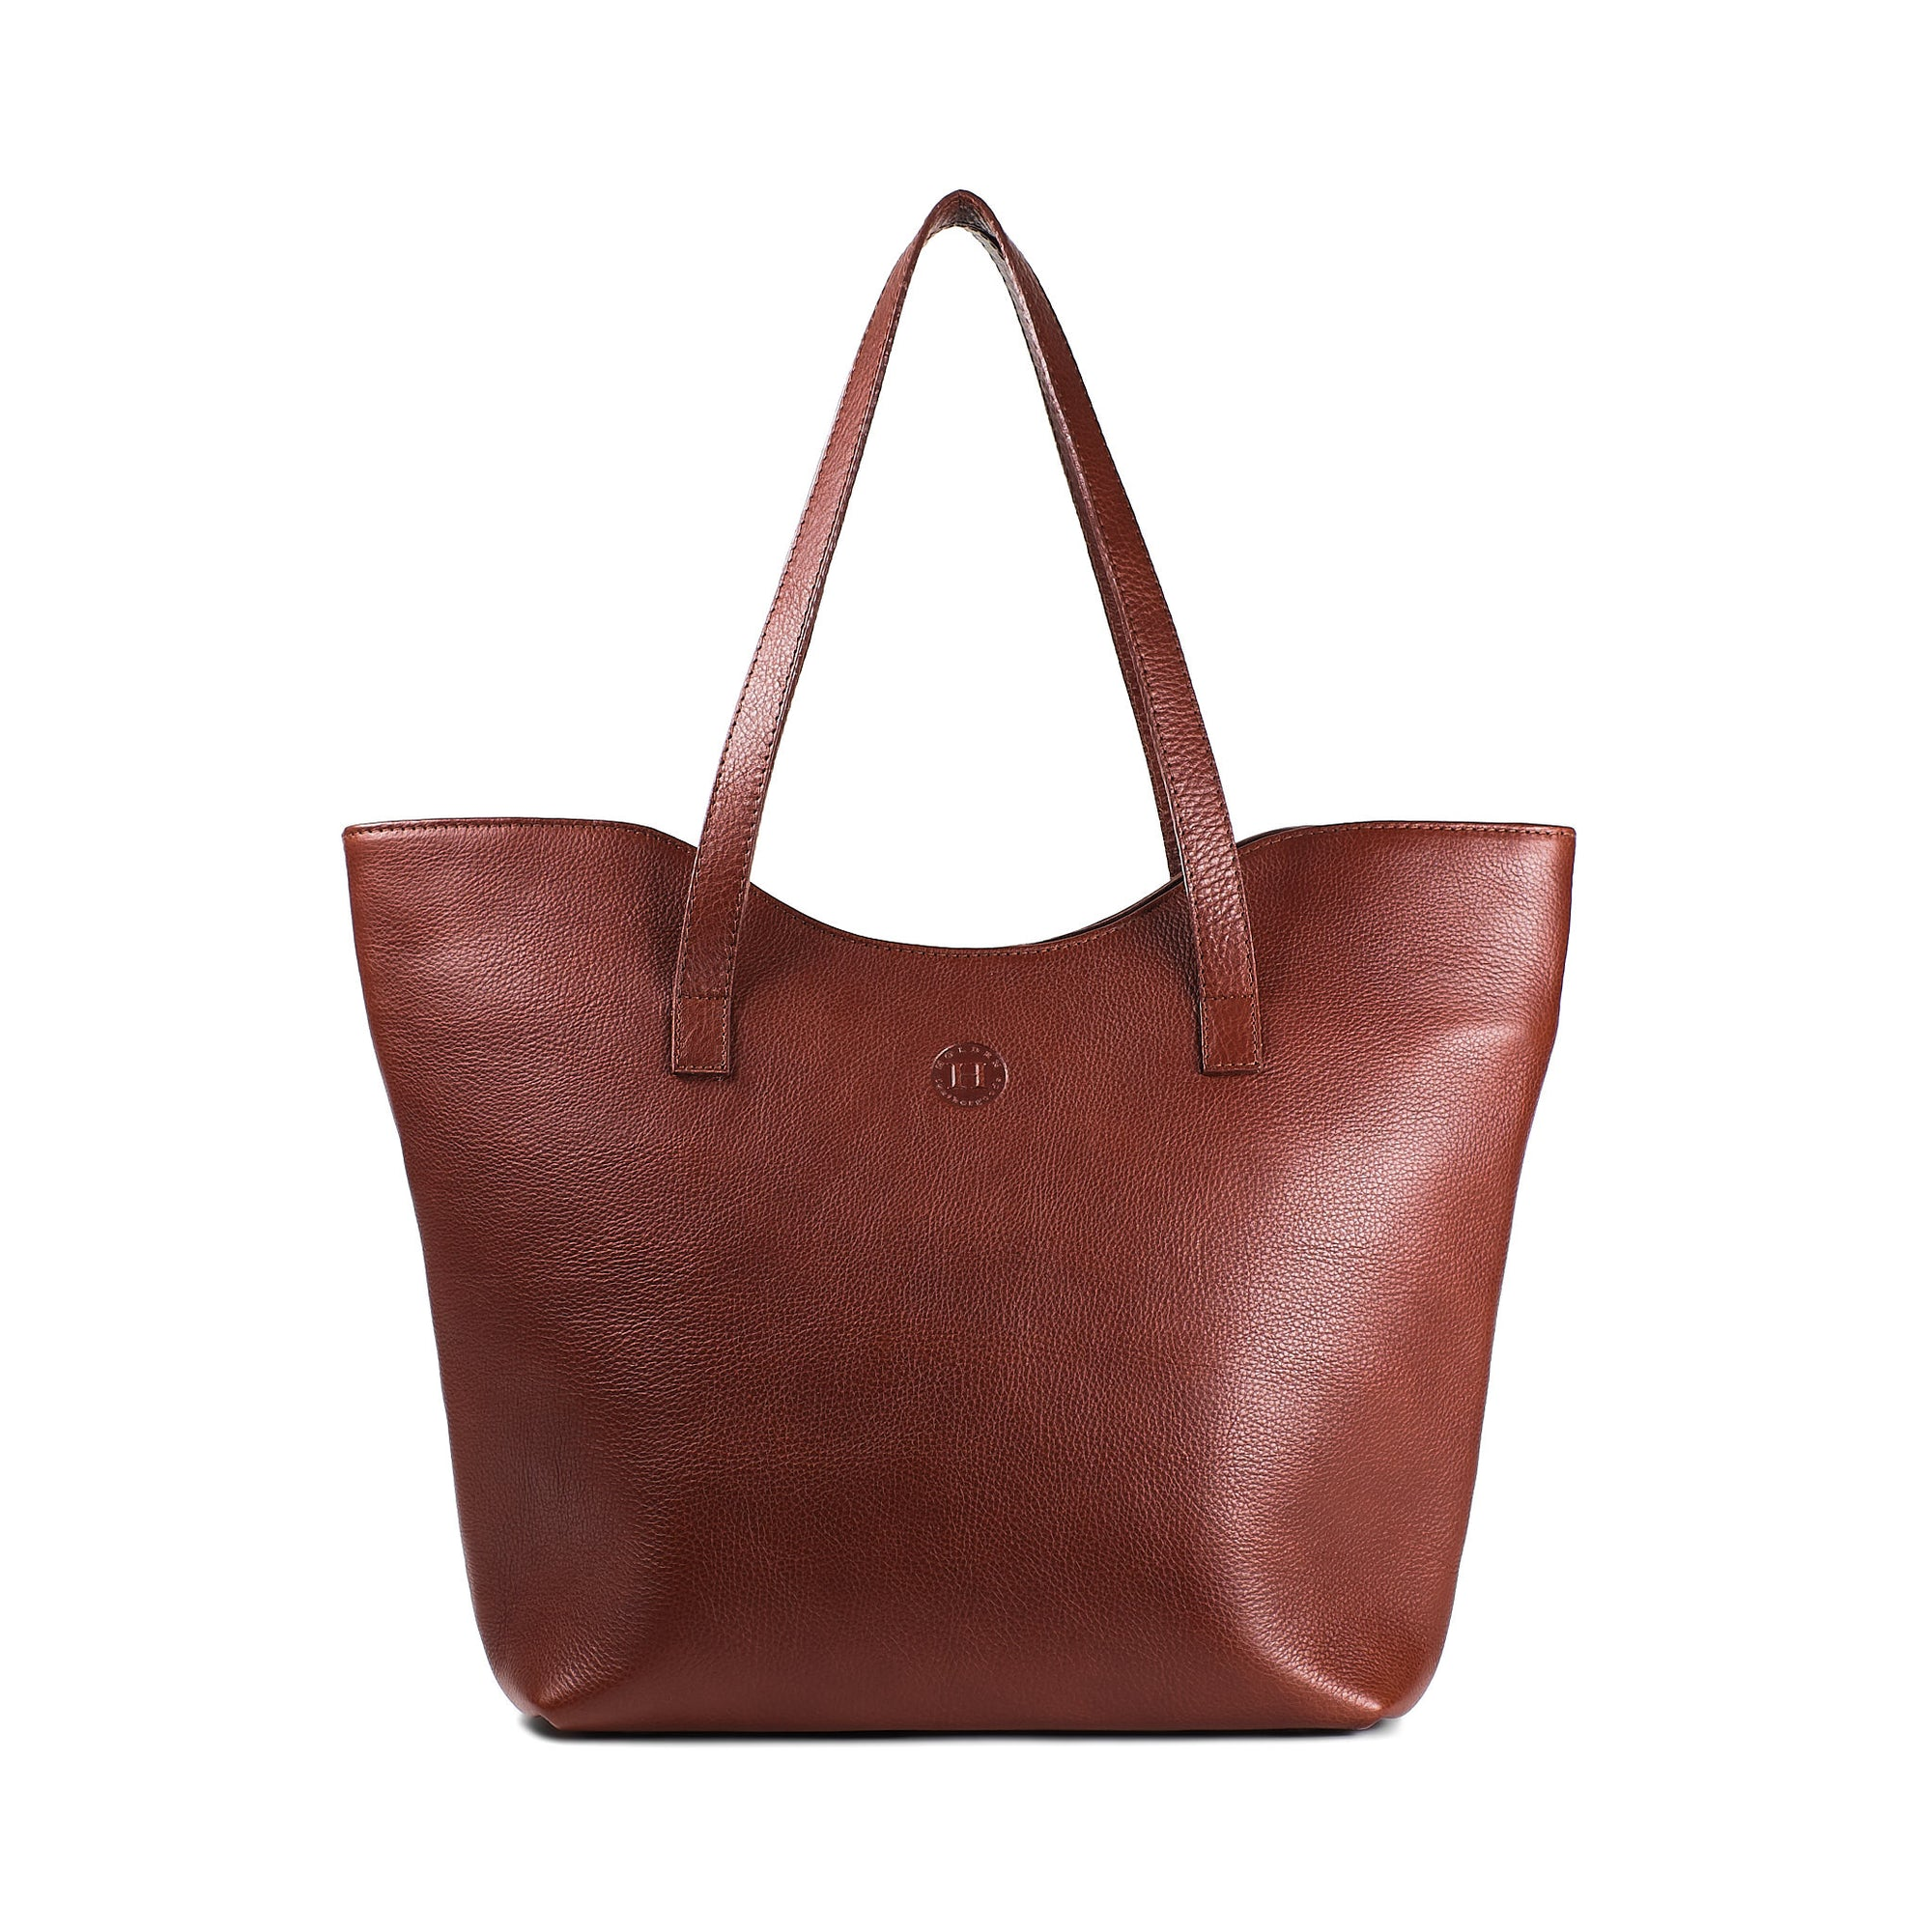 Caitlin Classic Large Tote - Chestnut